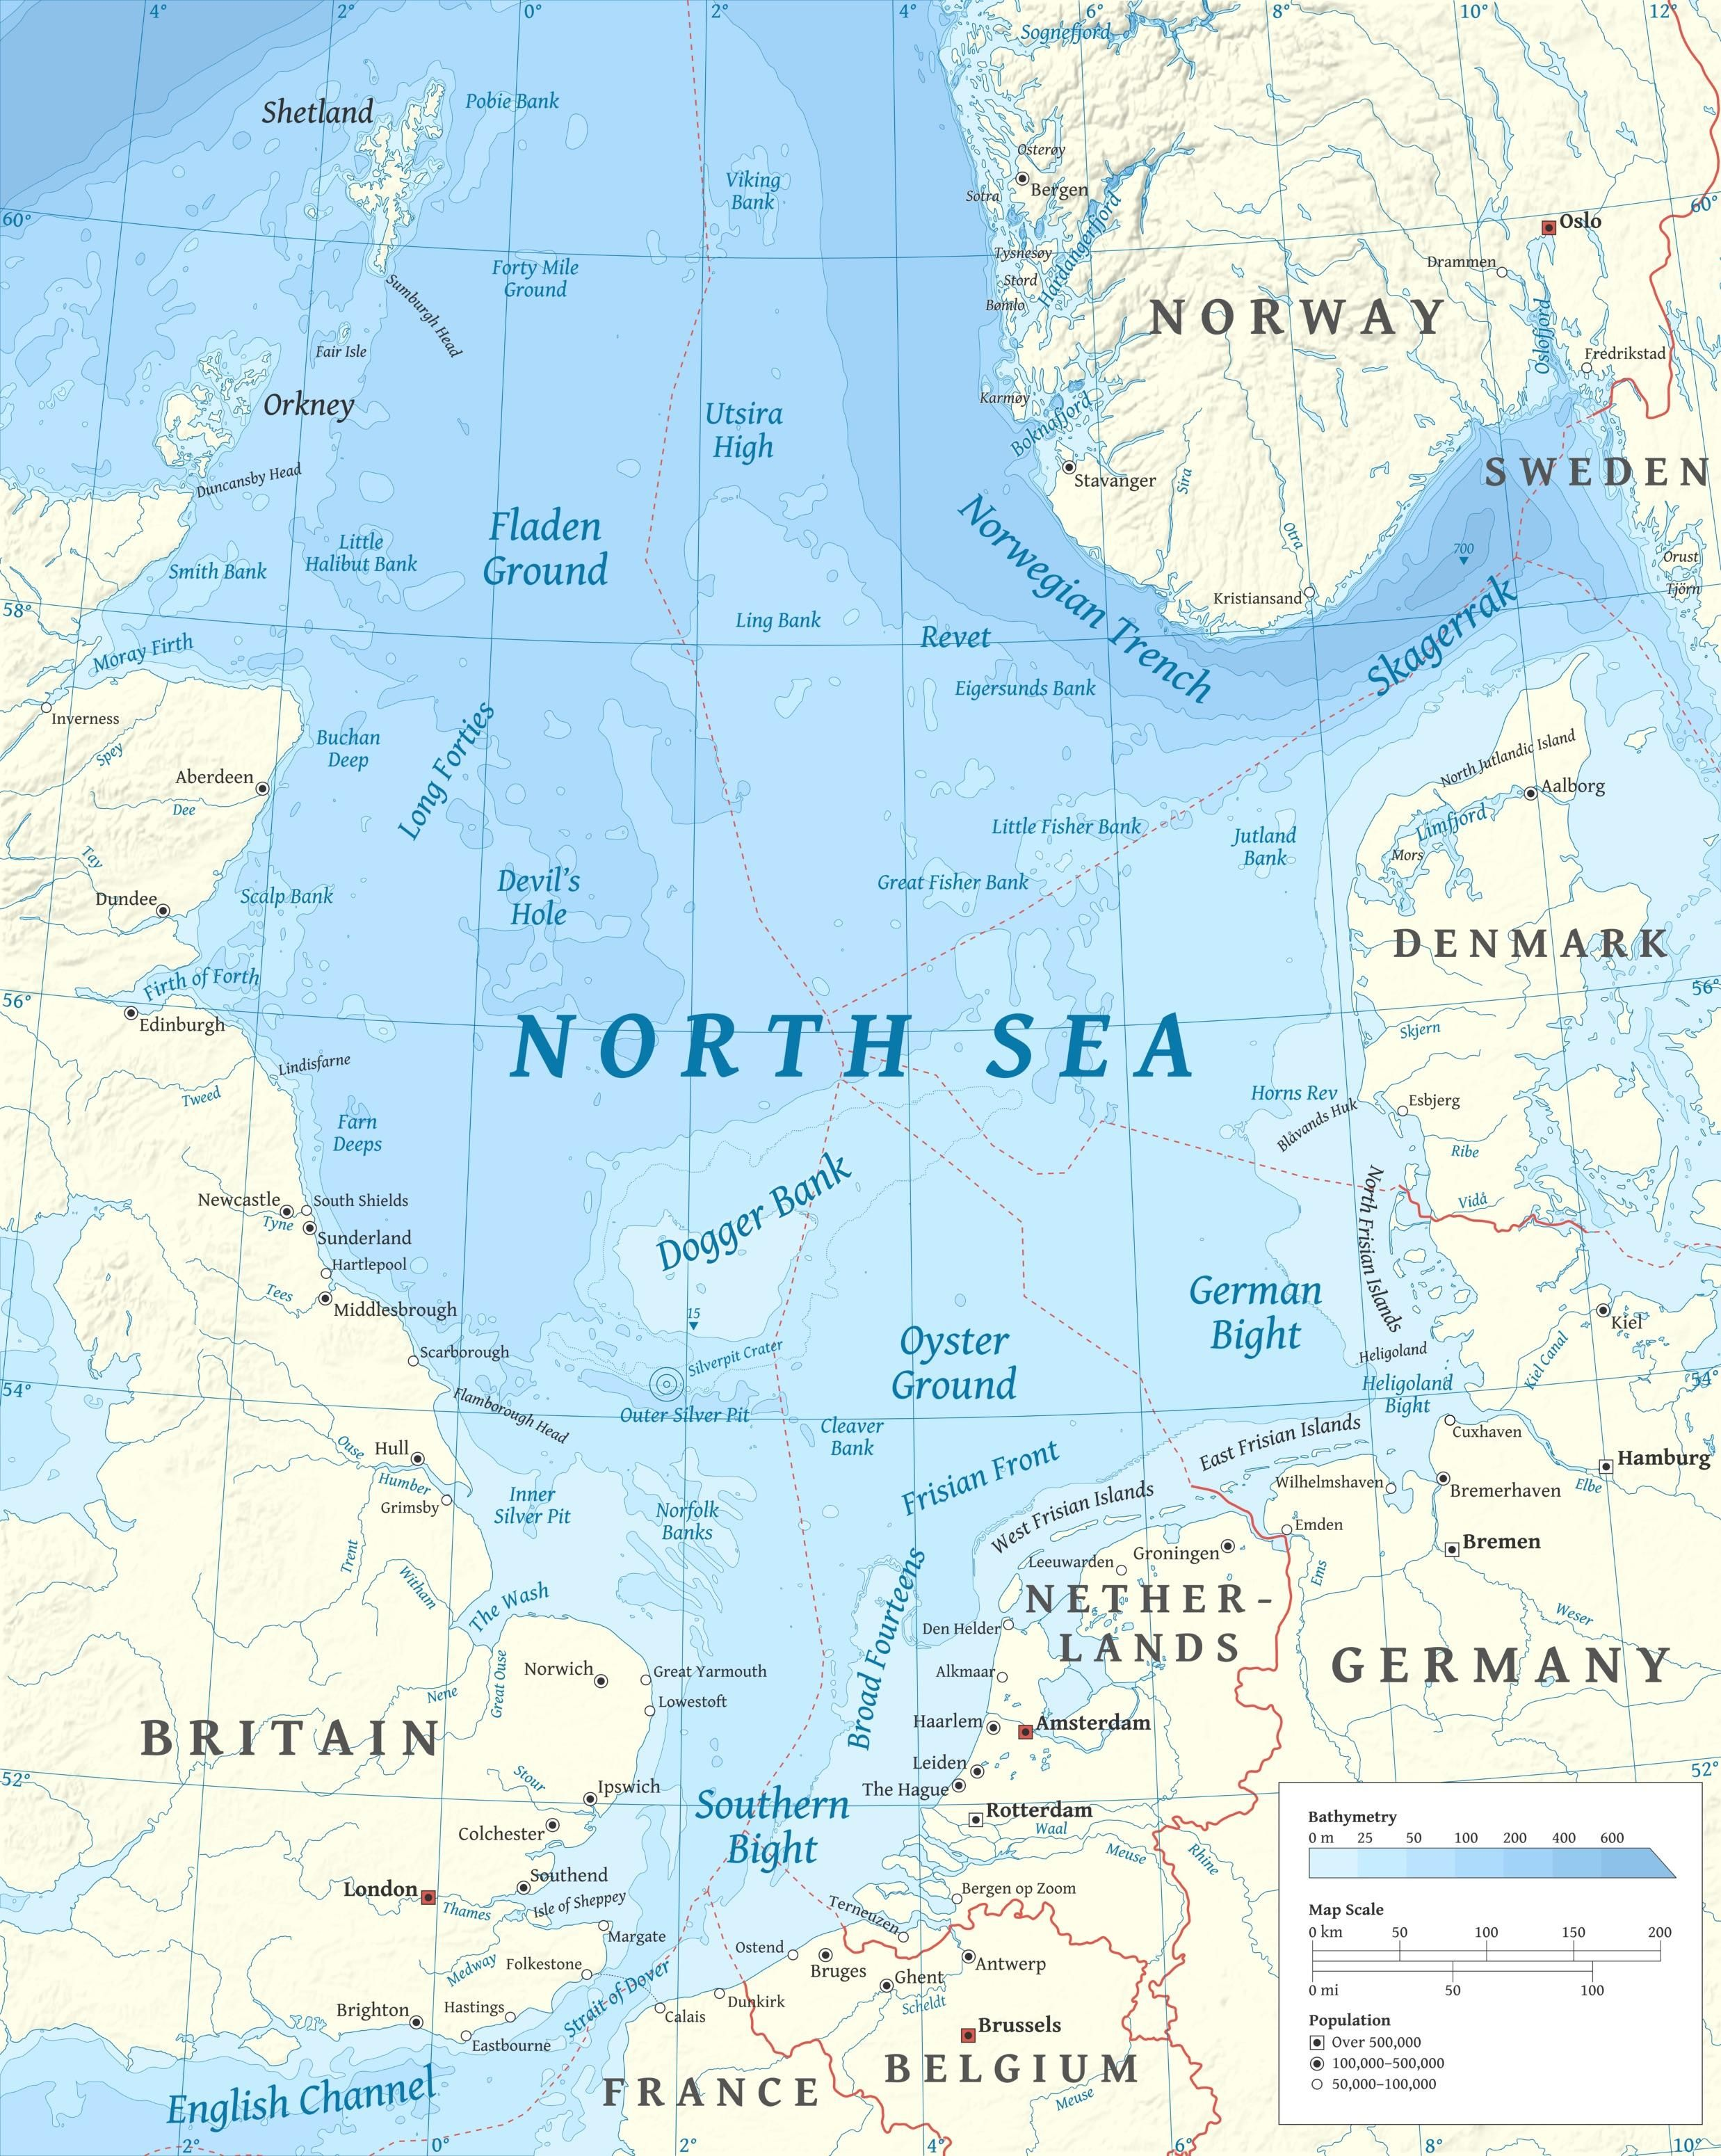 Map Of Germany North Sea.Map Of The North Sea With Name Of Important Fishing Grounds Sea